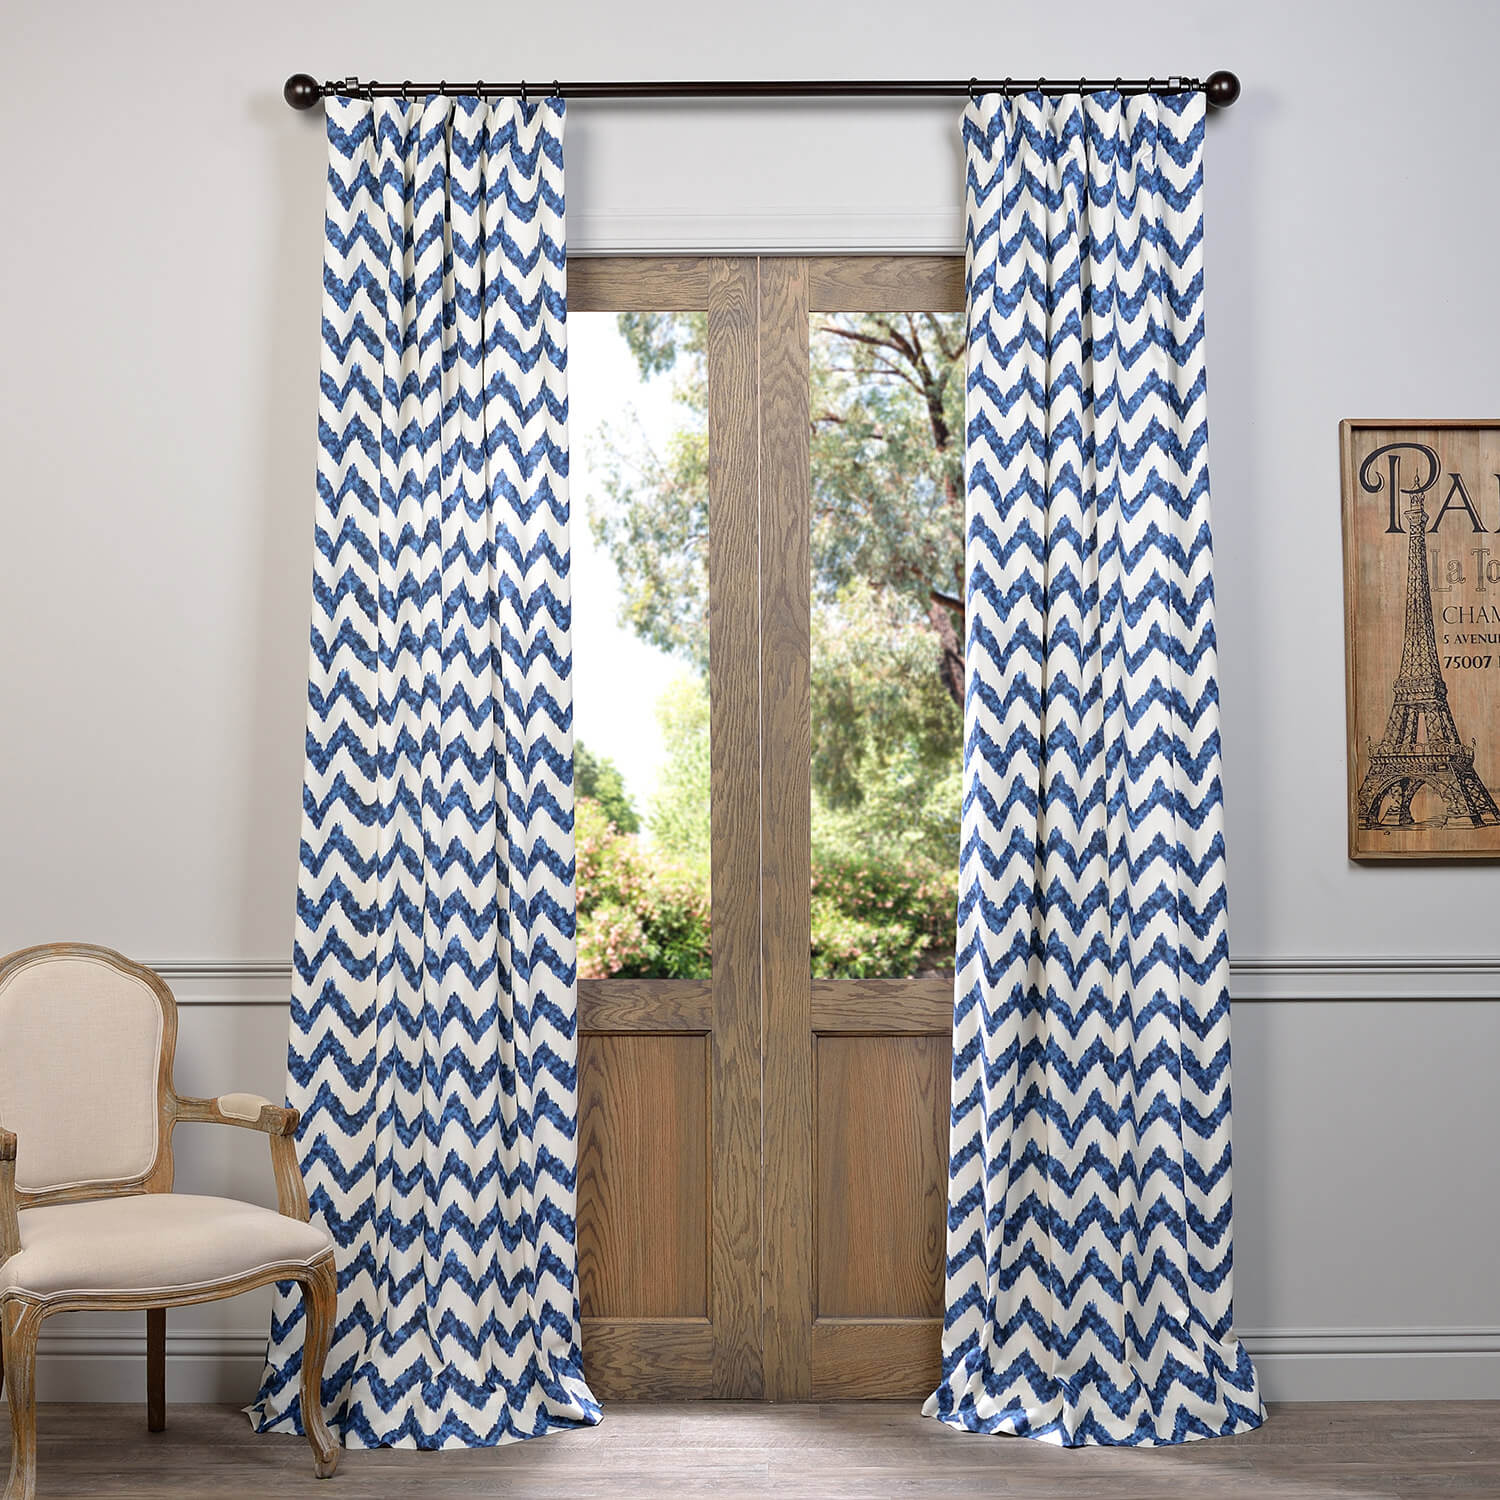 Calipso Blue Printed Cotton Curtain